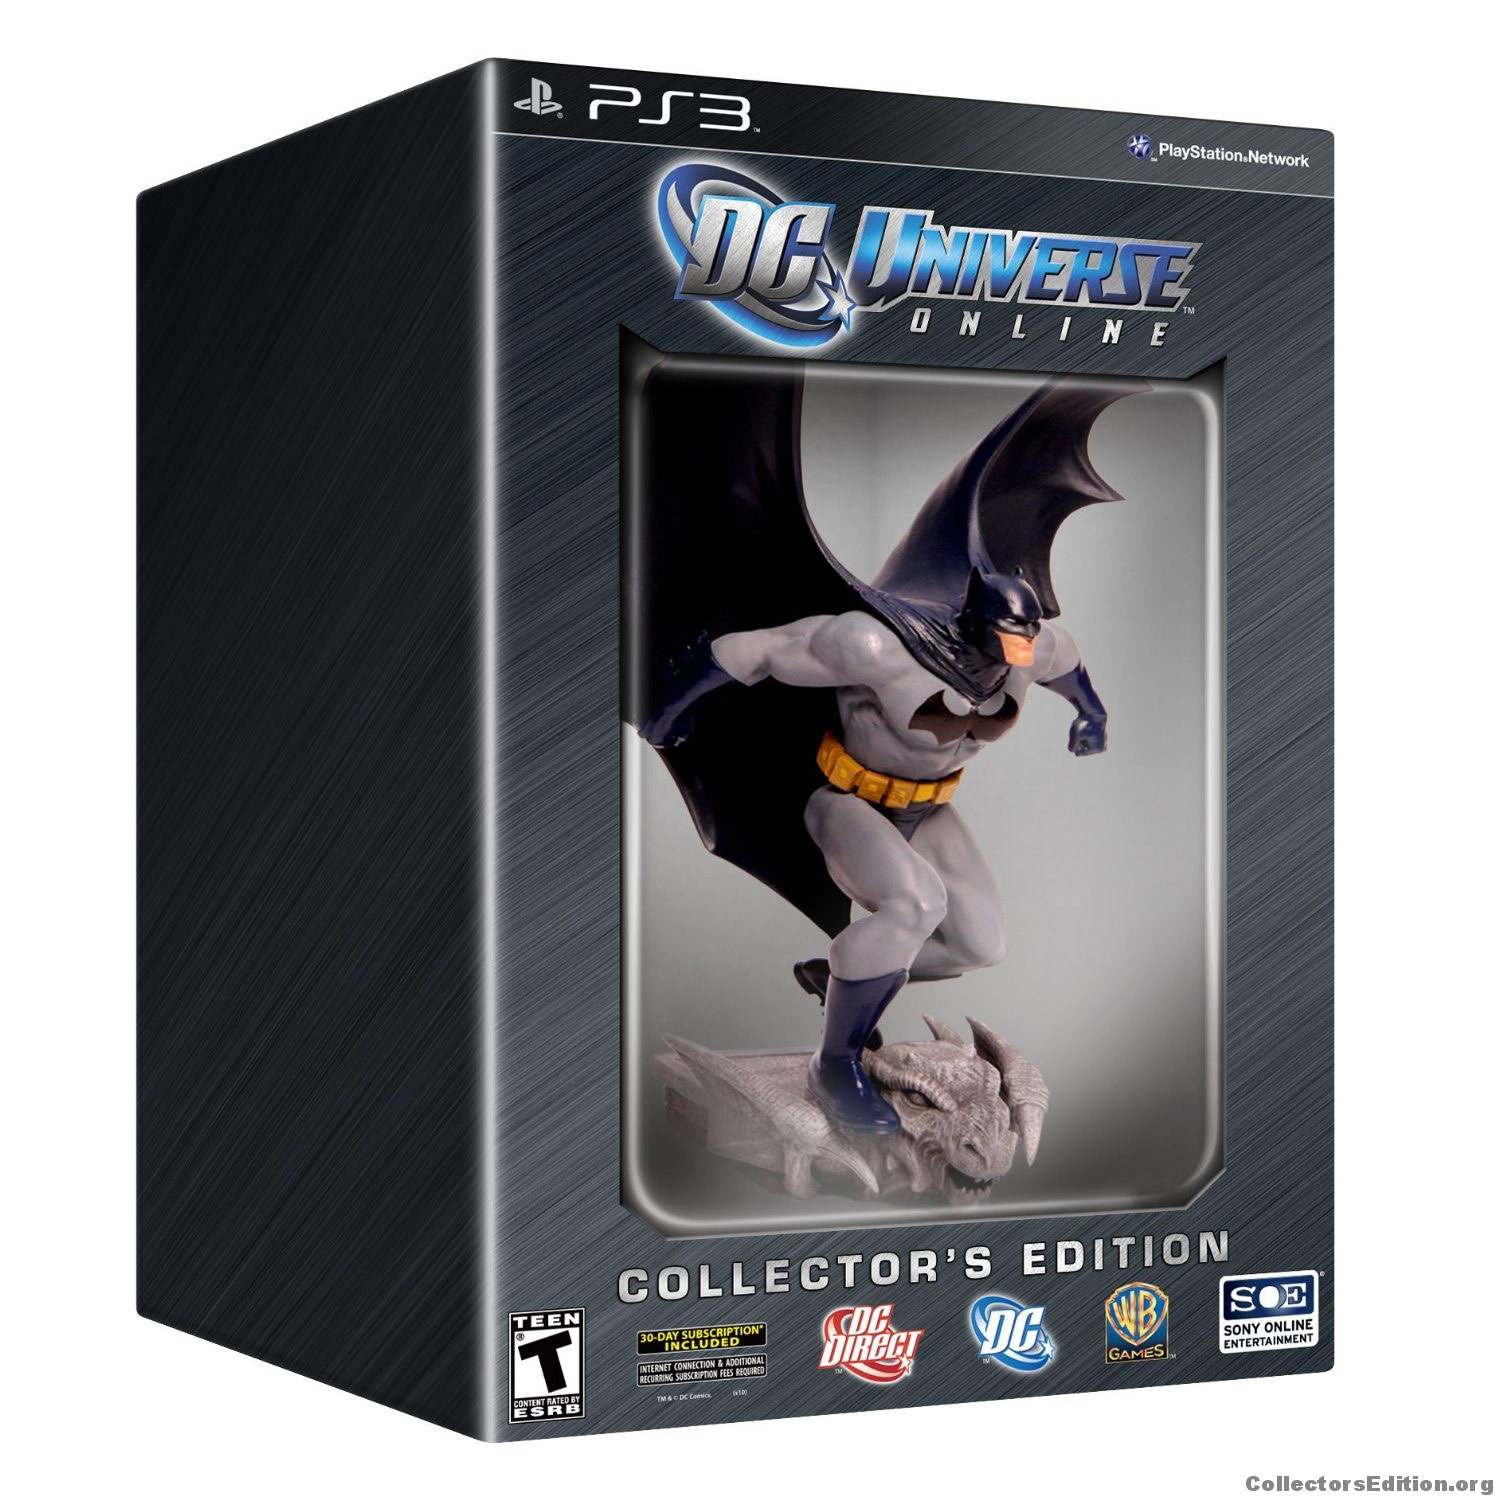 Edition For Ps3 Collectorsedition Org Dc Universe Online Collector S Edition